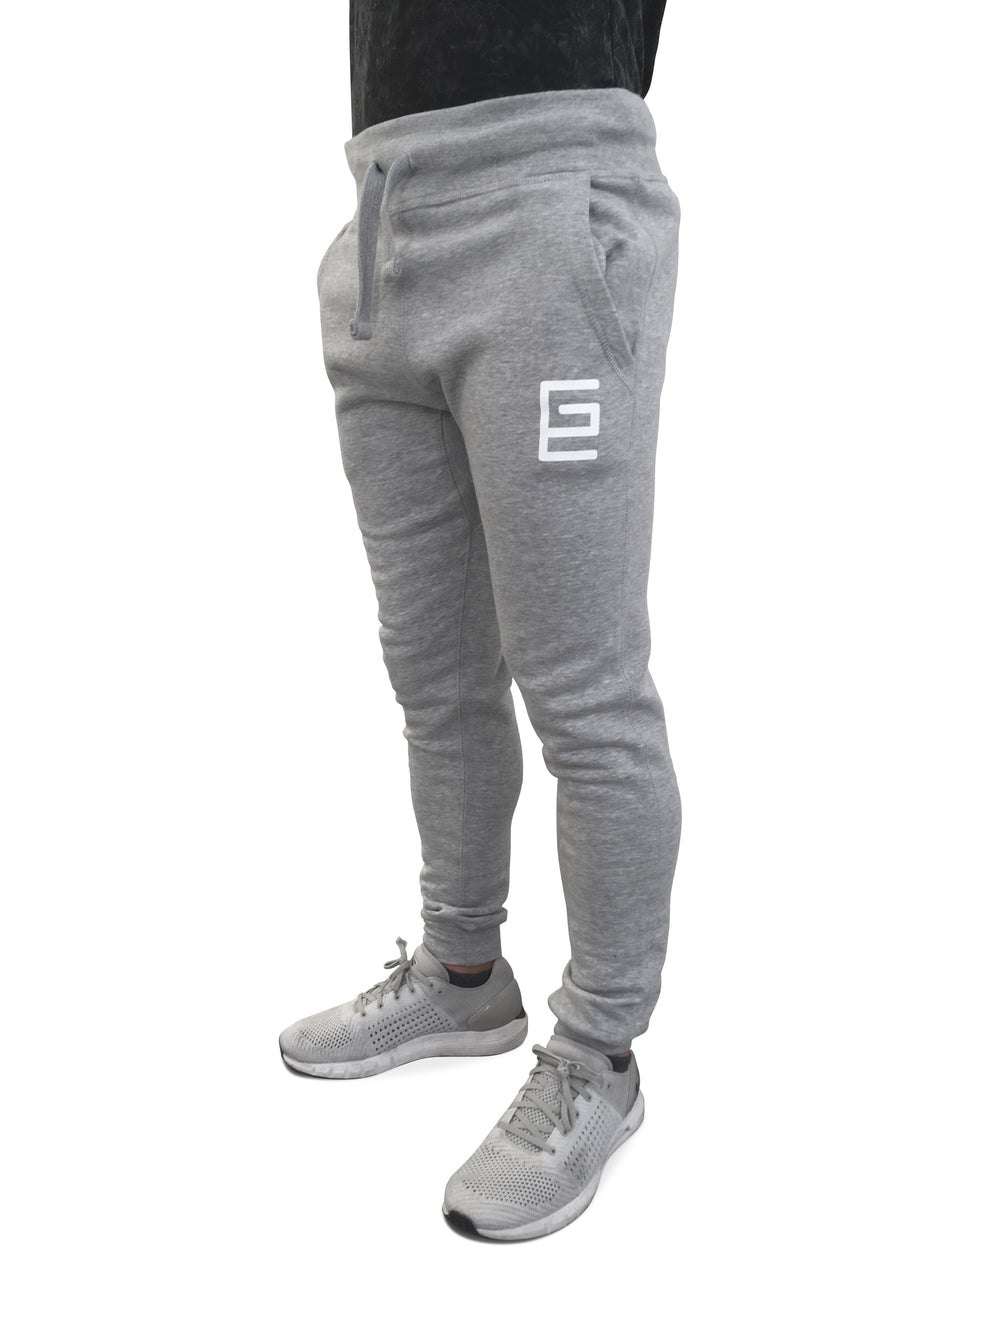 GRAV Joggers Gravitated Equations Clothing